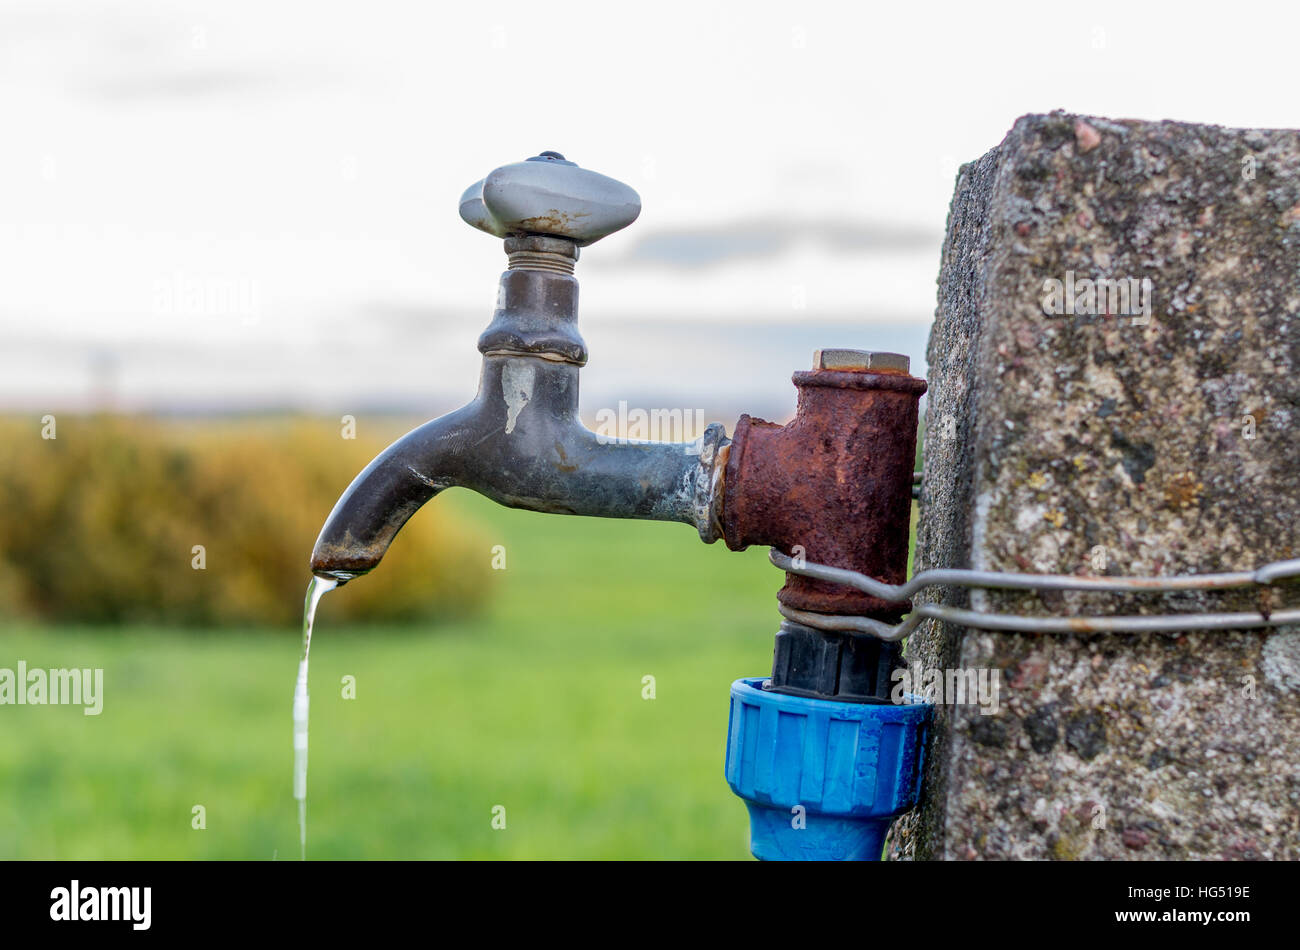 A old rusty water tap in garden Stock Photo: 130417882 - Alamy